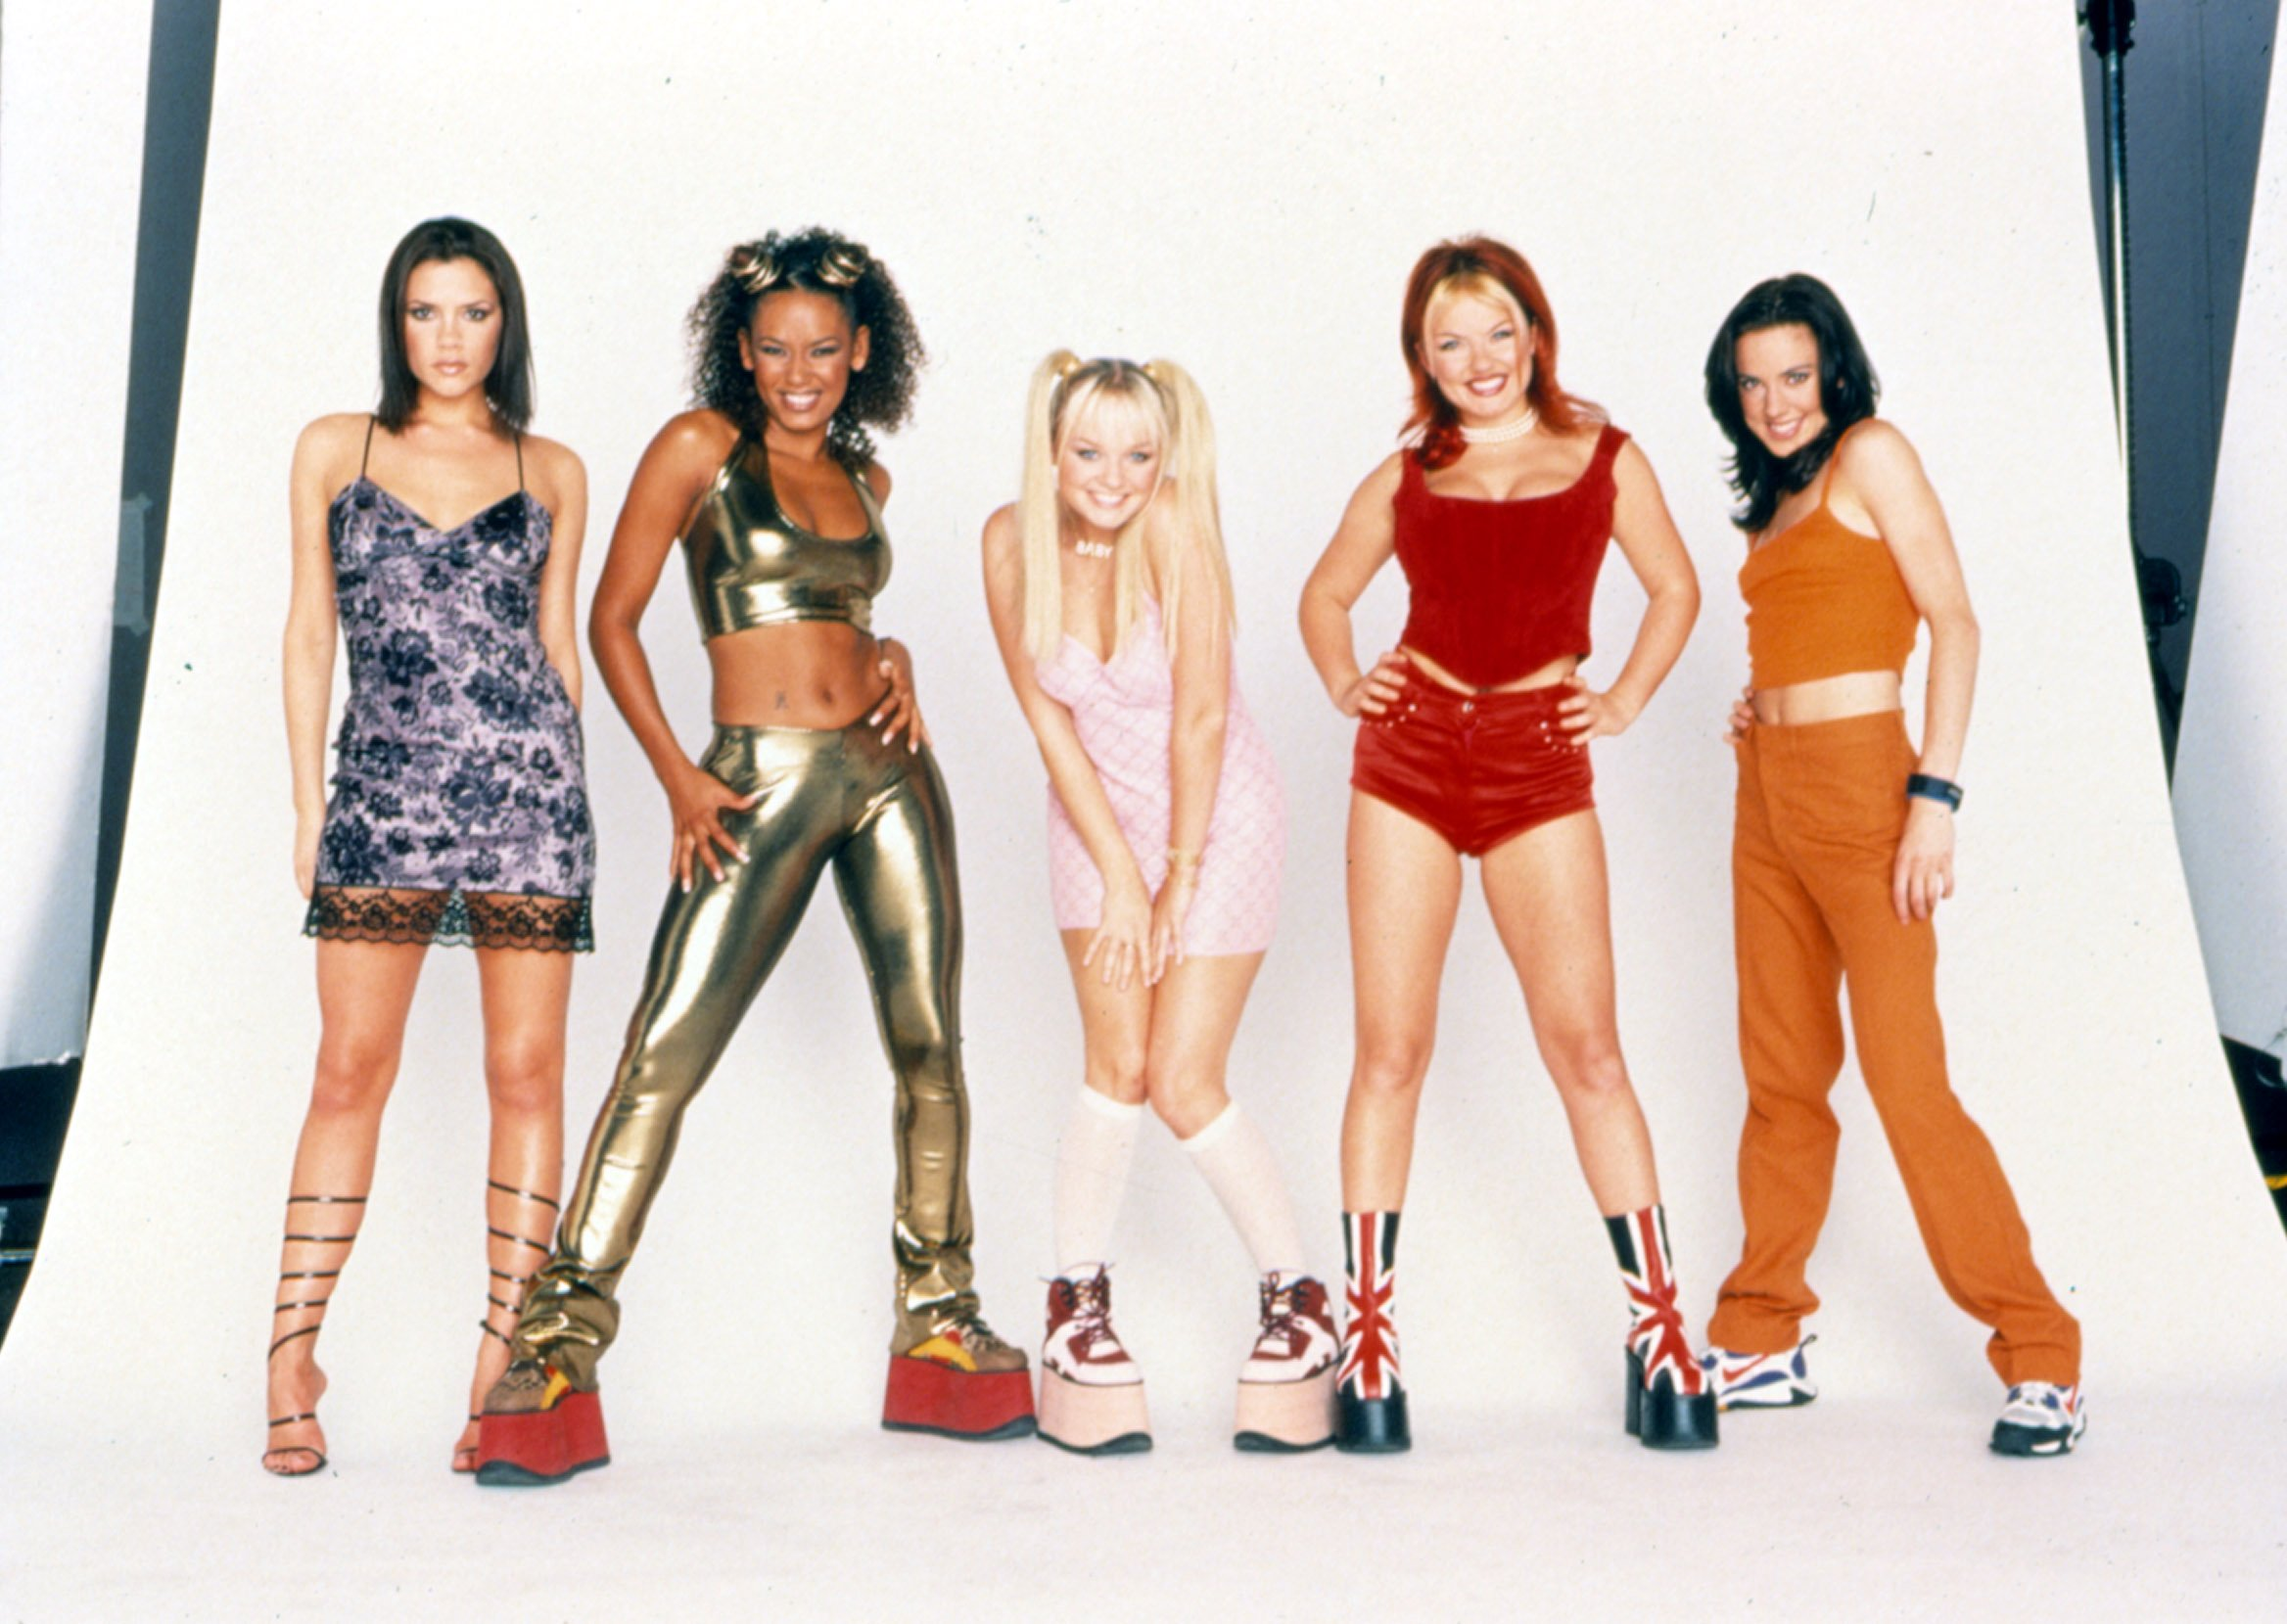 SPICE WORLD, Melanie Brown as Scary Spice, Emma Bunton as Baby Spice, Melanie Chisholm as Sporty Spice, Geri Halliwell as Ginger Spice, Victoria Beckham as Posh Spice, 1997, (c)Columbia Pictures/courtesy Everett Collection, Image: 98185039, License: Rights-managed, Restrictions: For usage credit please use; ©Columbia Pictures/Courtesy Everett Collection, Model Release: no, Credit line: Profimedia, Everett